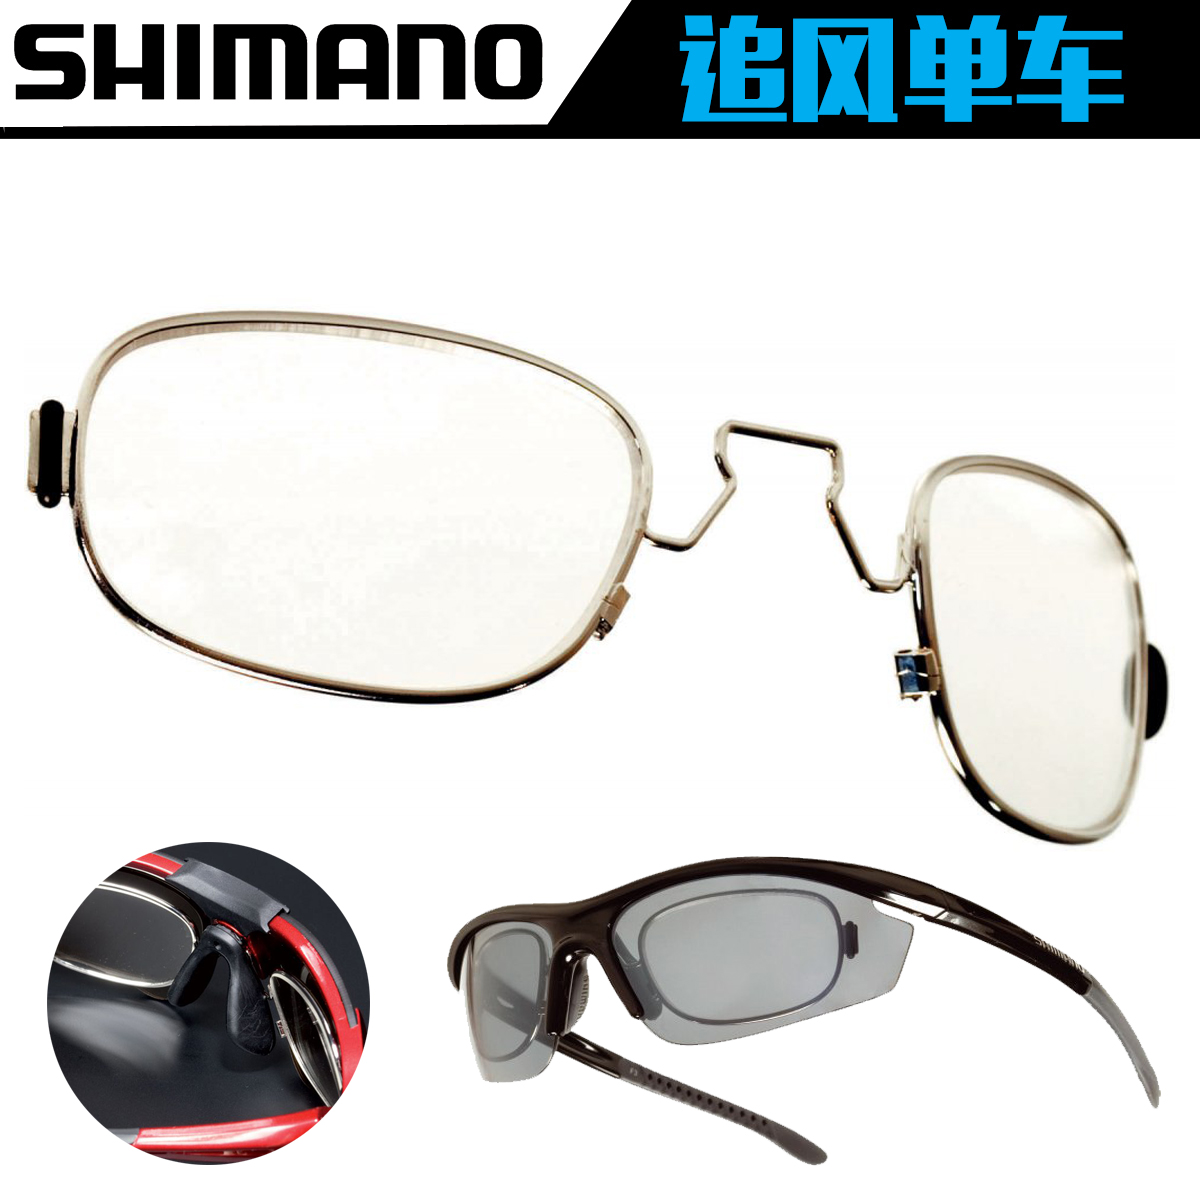 ca7eae9c9b8 New authentic Shimano Shimano Rx Clip cycling glasses frame myopia. Loading  zoom